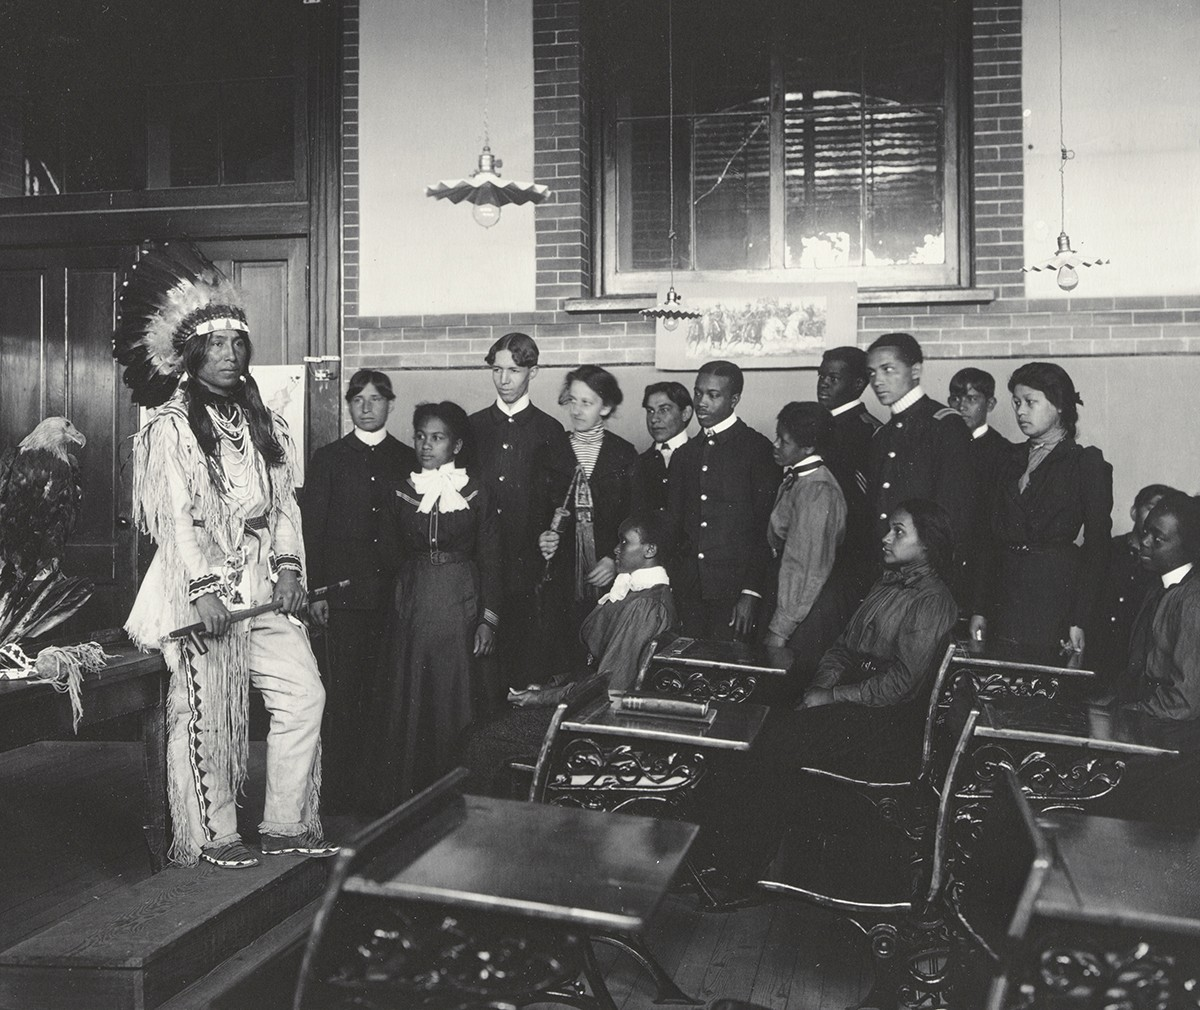 A Native American man wearing a feathered headdress stands in a classroom of students.